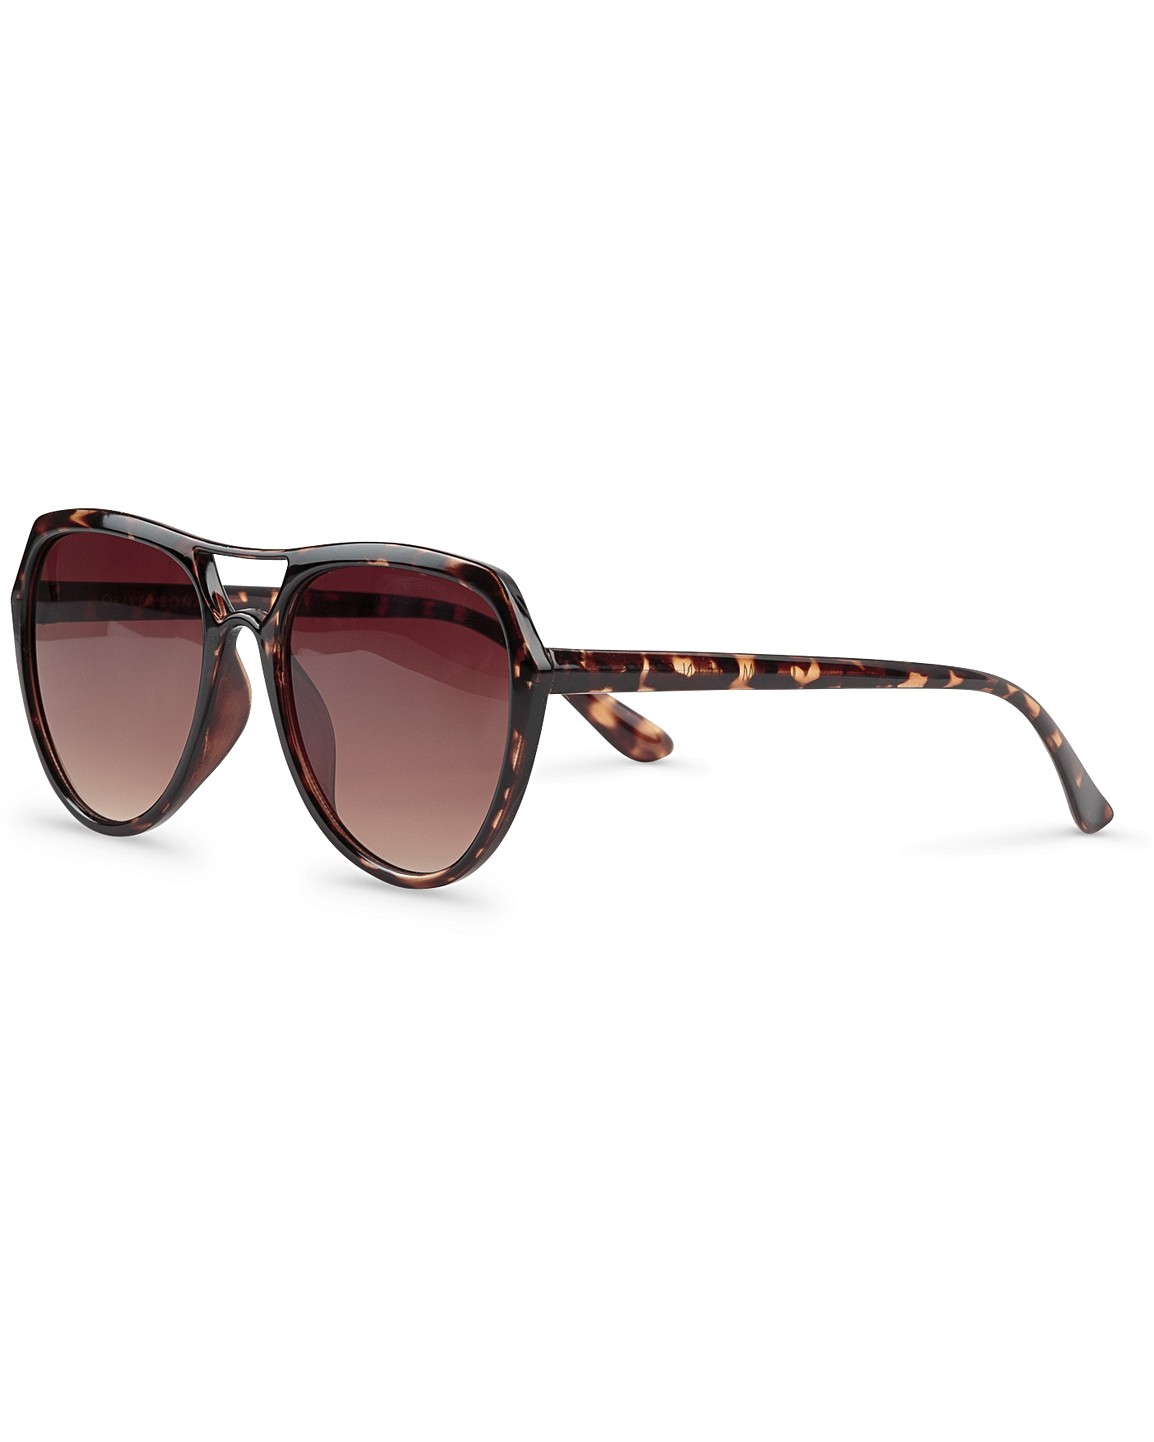 a69d721ea Angular Aviator Tortoise Shell Sunglasses